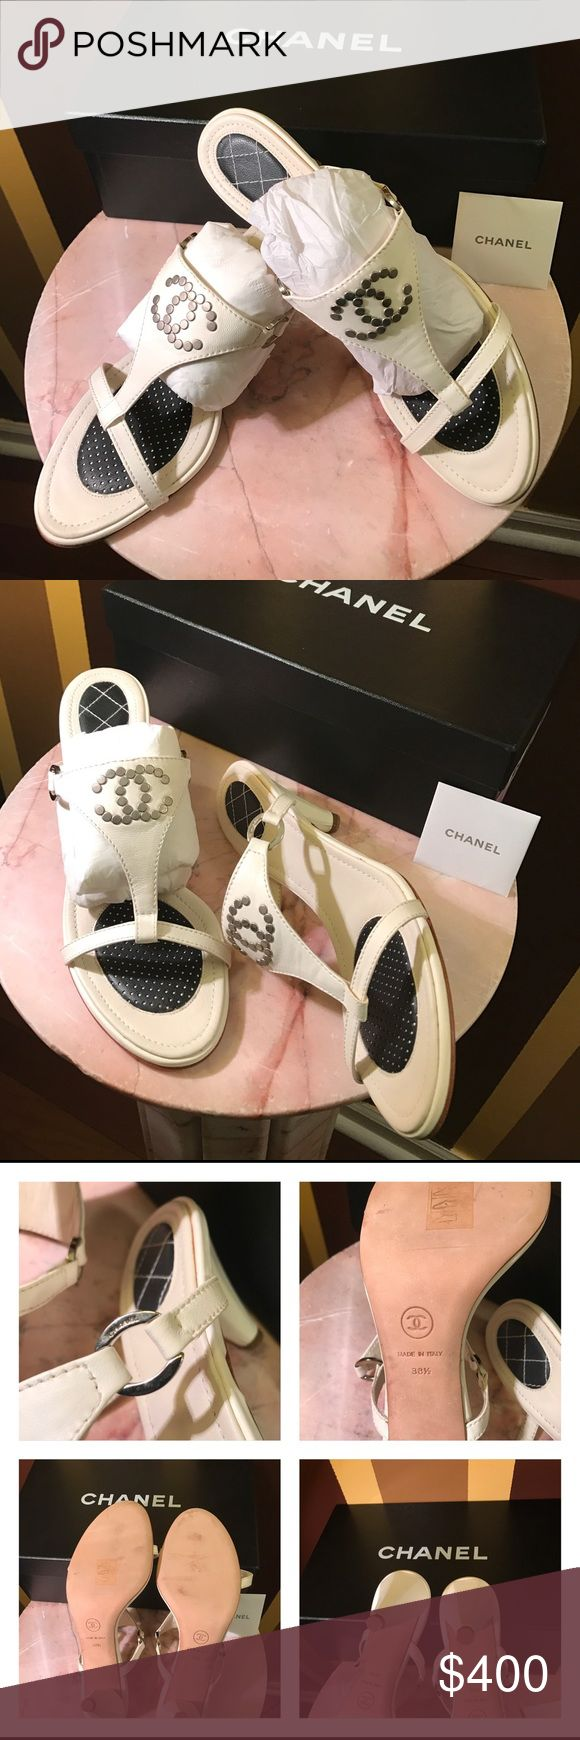 Chanel ivory sandals size 38.5 Very gently used as you could tell from the pictures 💯 Authentic Chanel ivory color size 38.5  !! but runs small (with out box )coms with duster bag only in excellent condition original price was $ 1195 . CHANEL Shoes Sandals